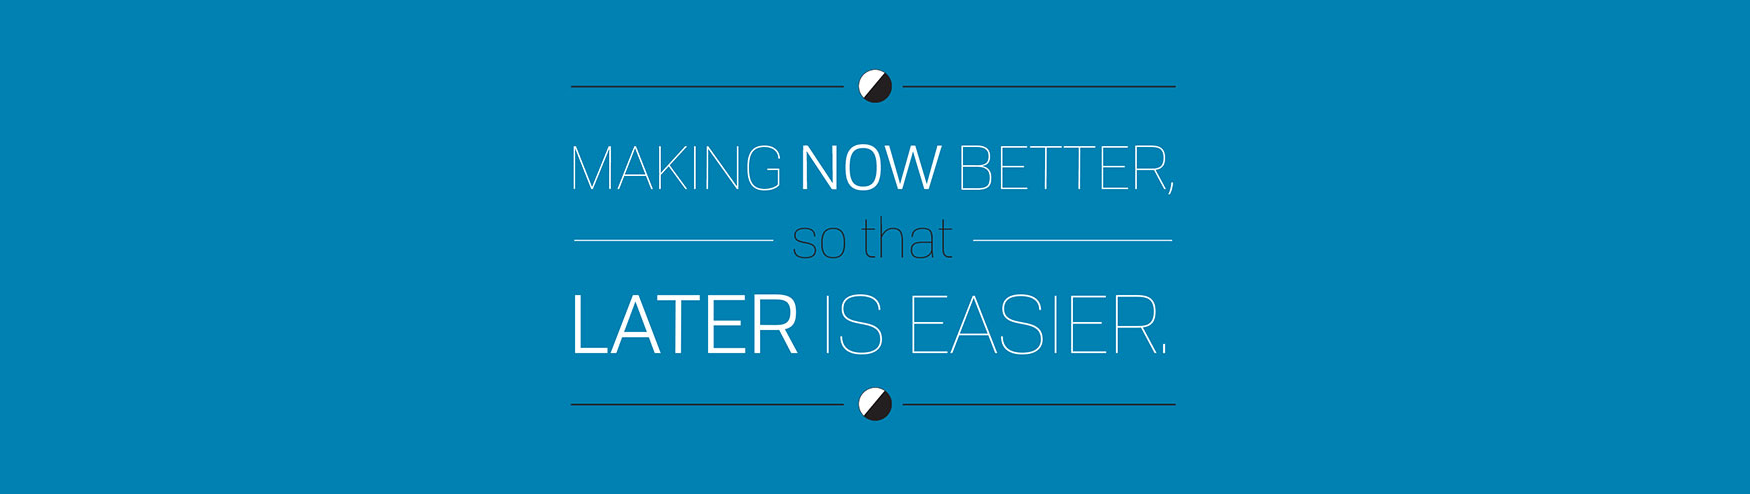 Making Now Better So That Later Is Easier